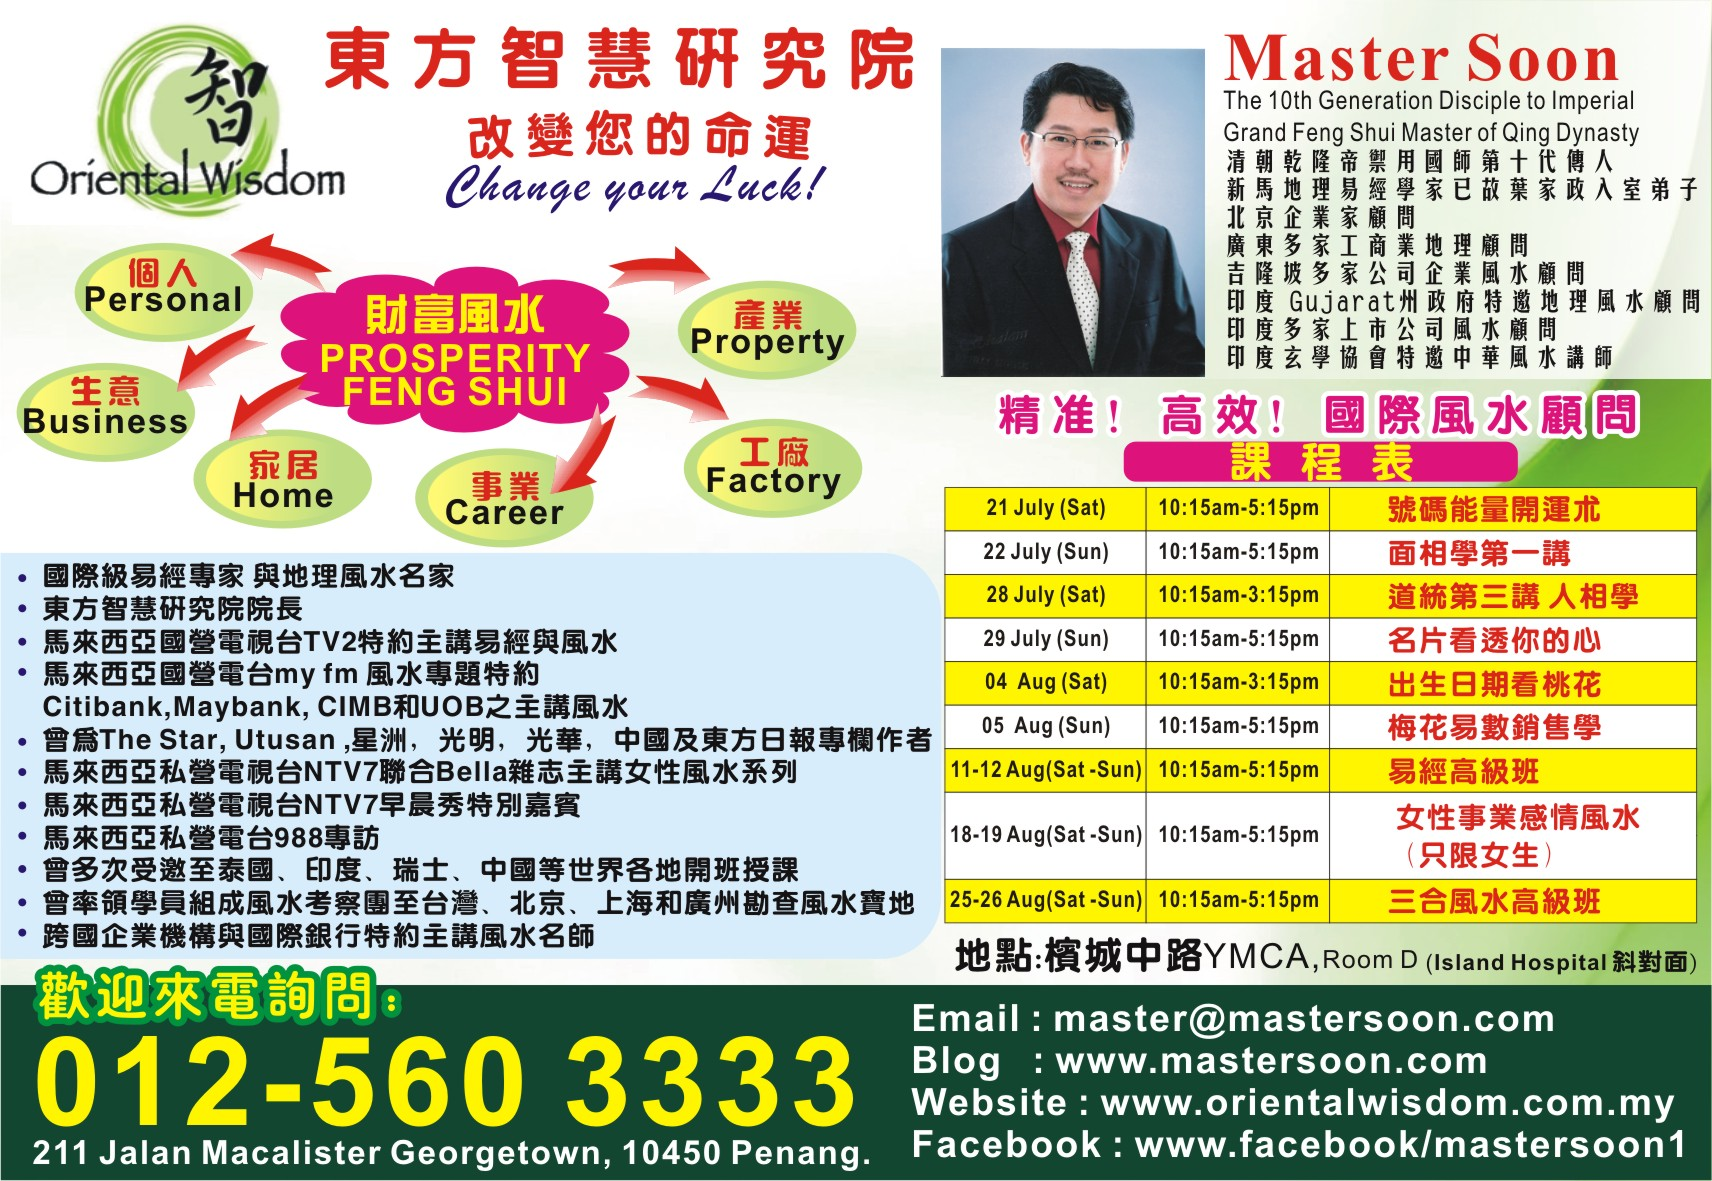 Up Coming Feng Shui Courses by Master Soon in July-Aug 2012